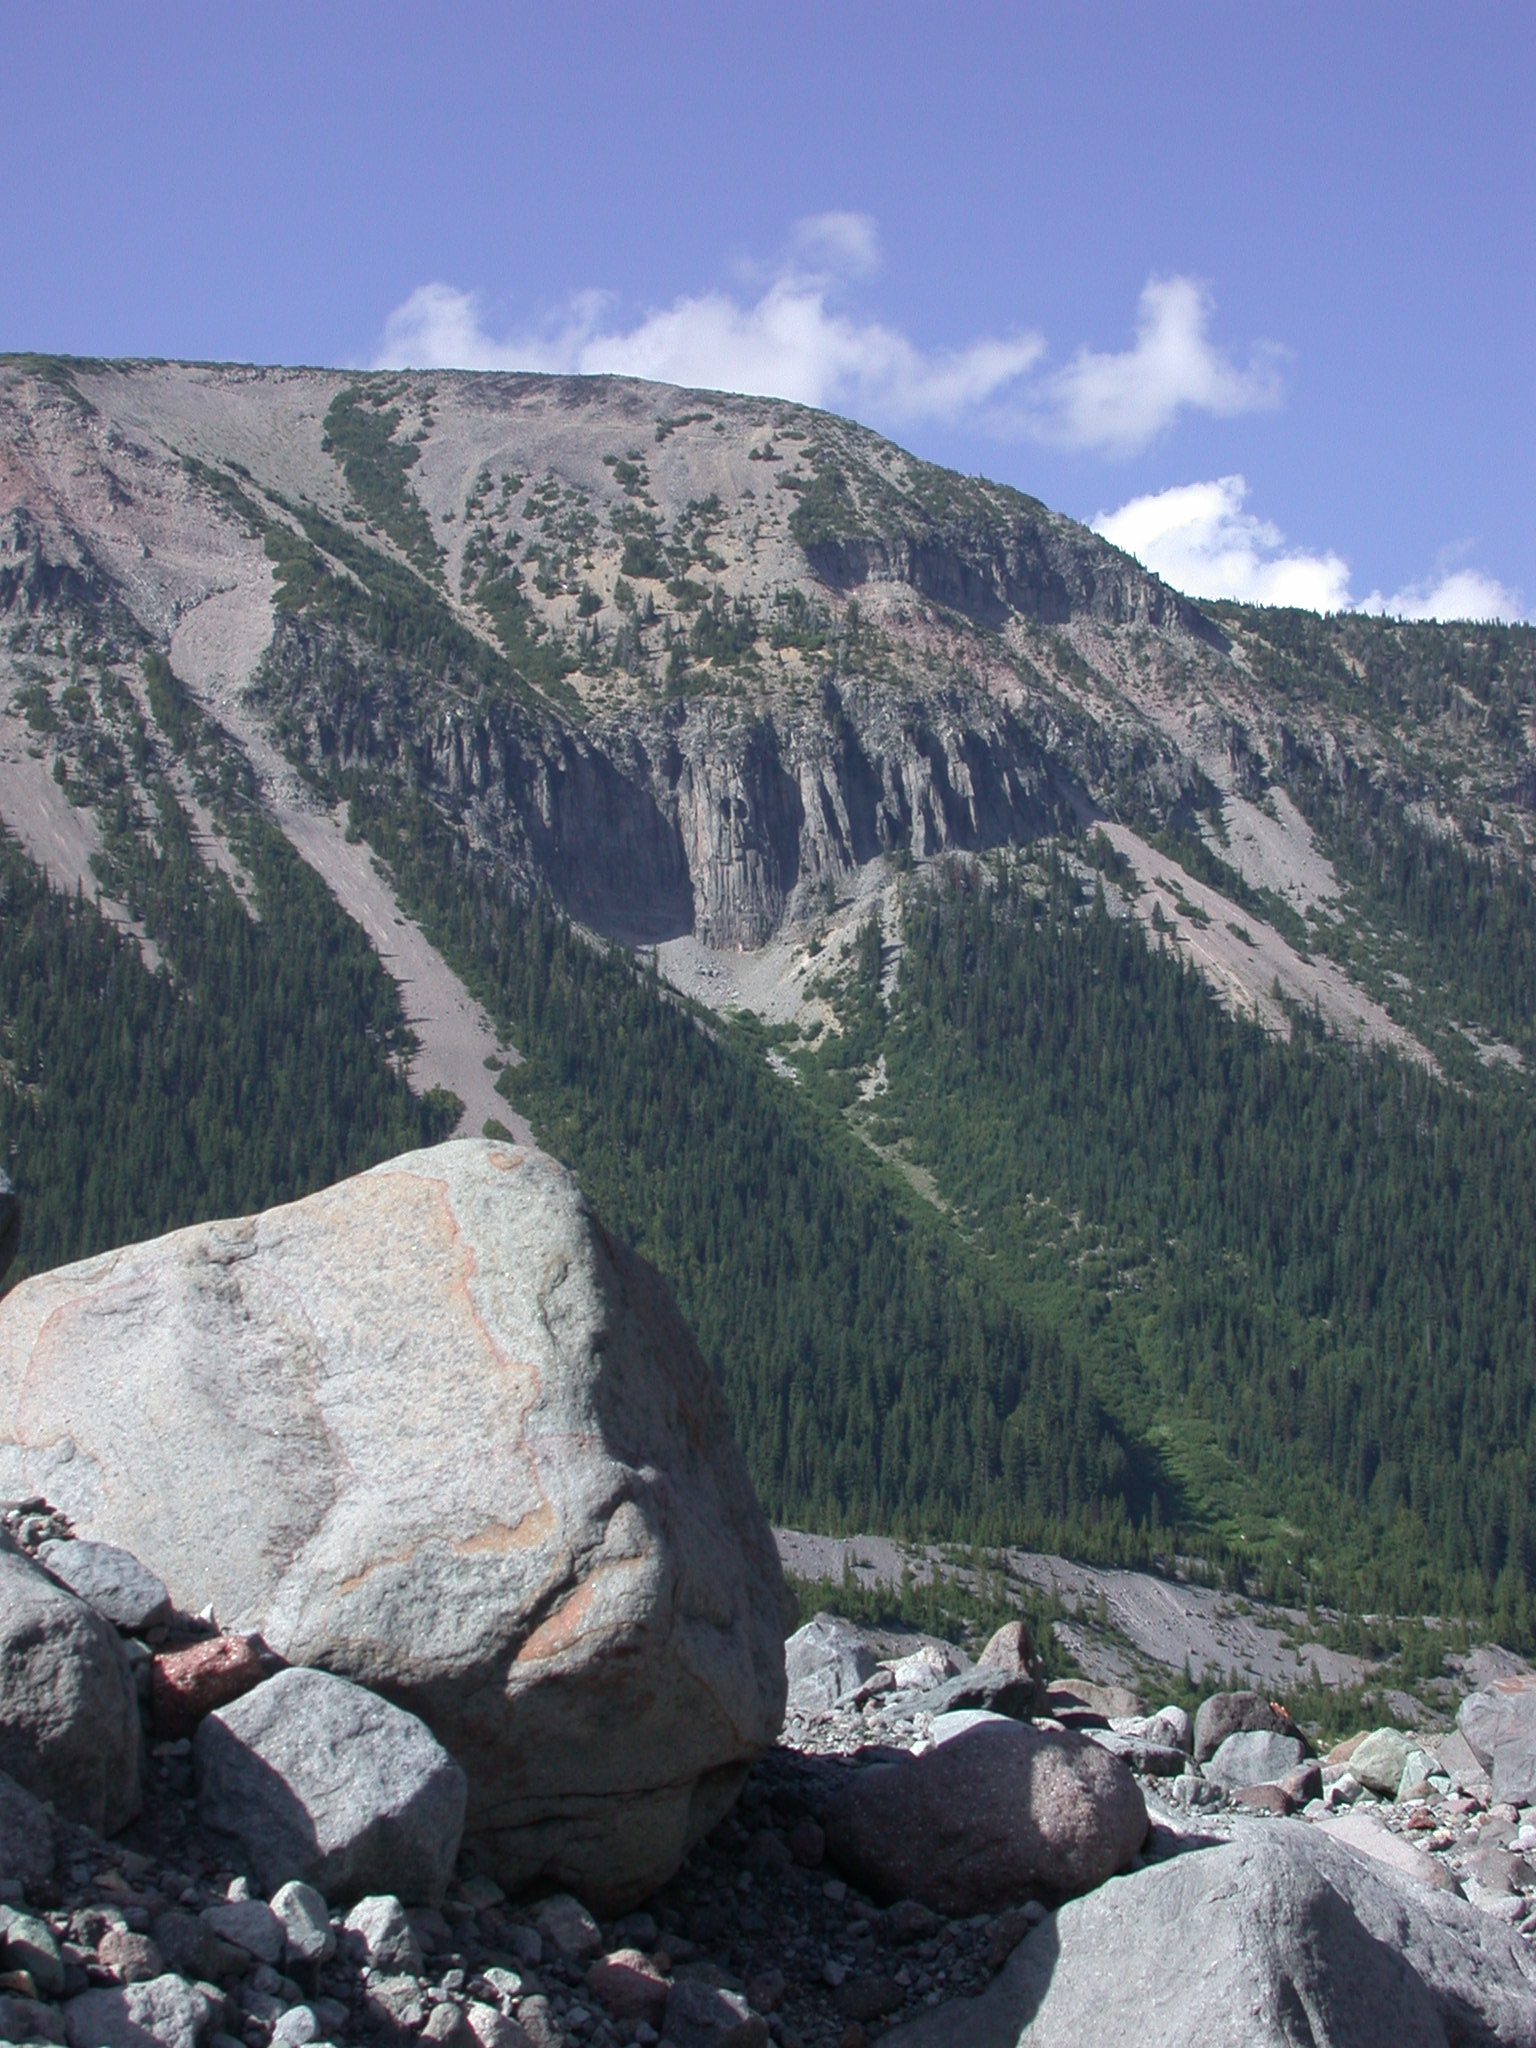 Another View of the Owl Outcrop on the Glacial Canyon of Mount Rainier